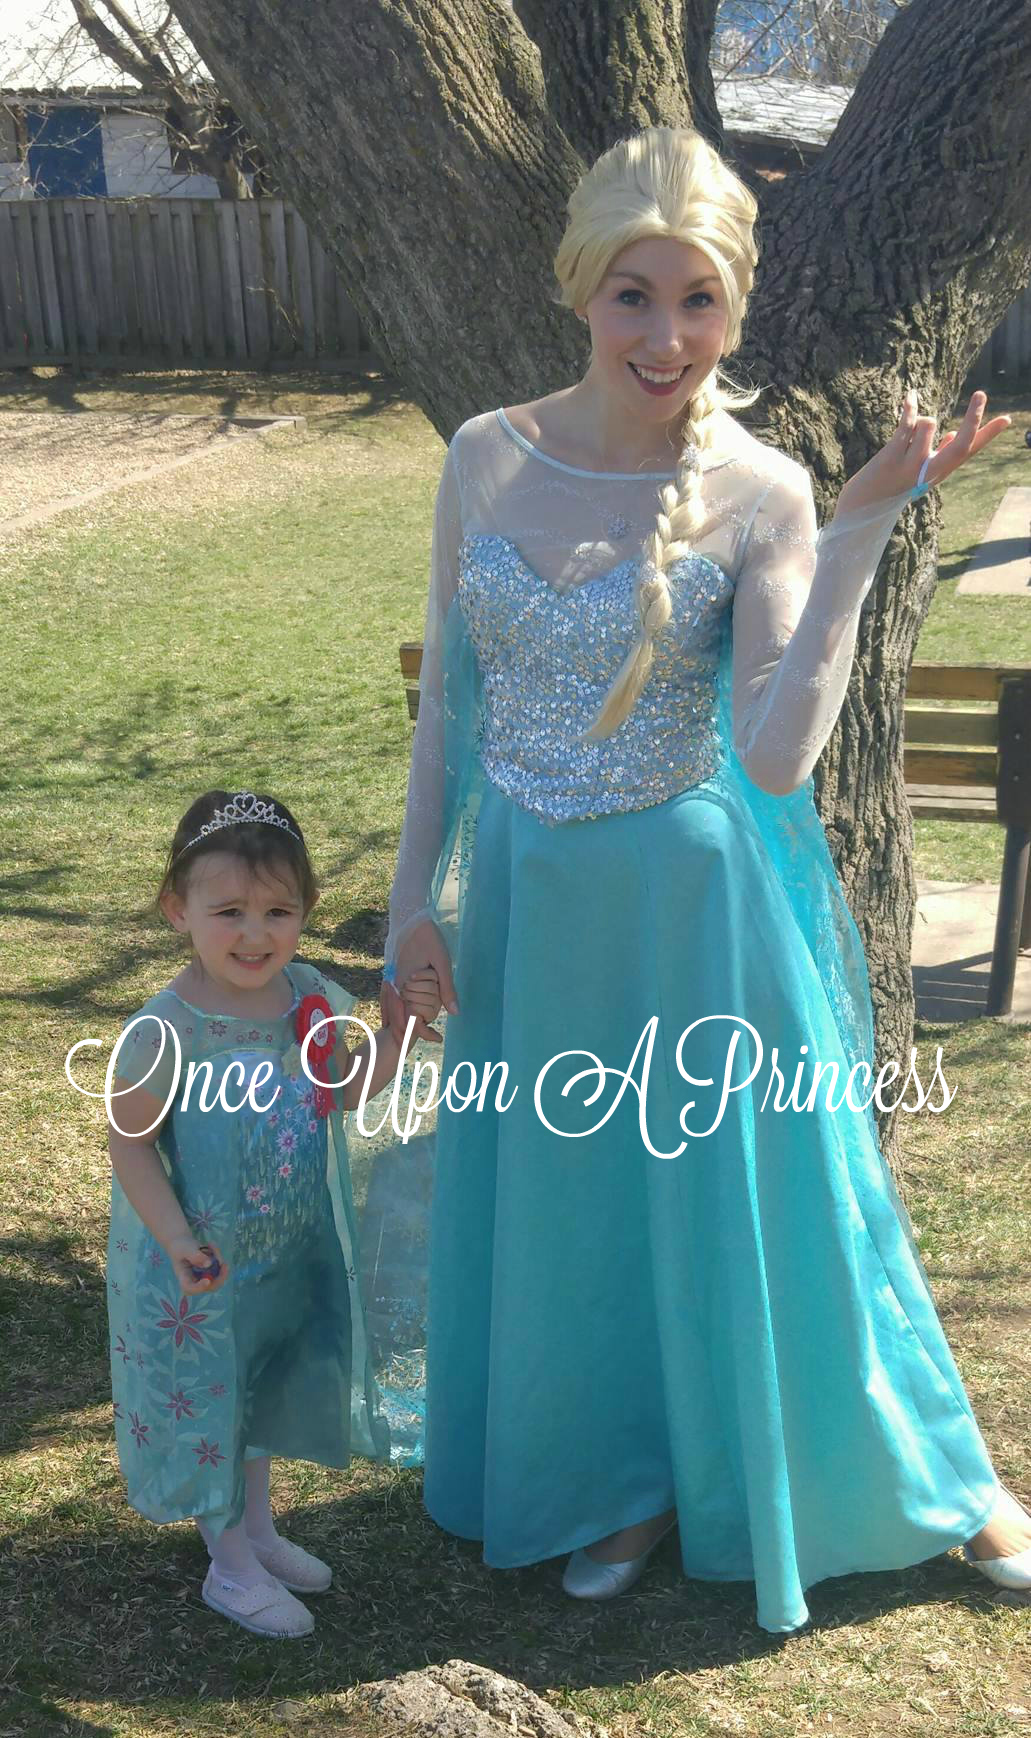 snow queen birthday once upon a princess party kingston